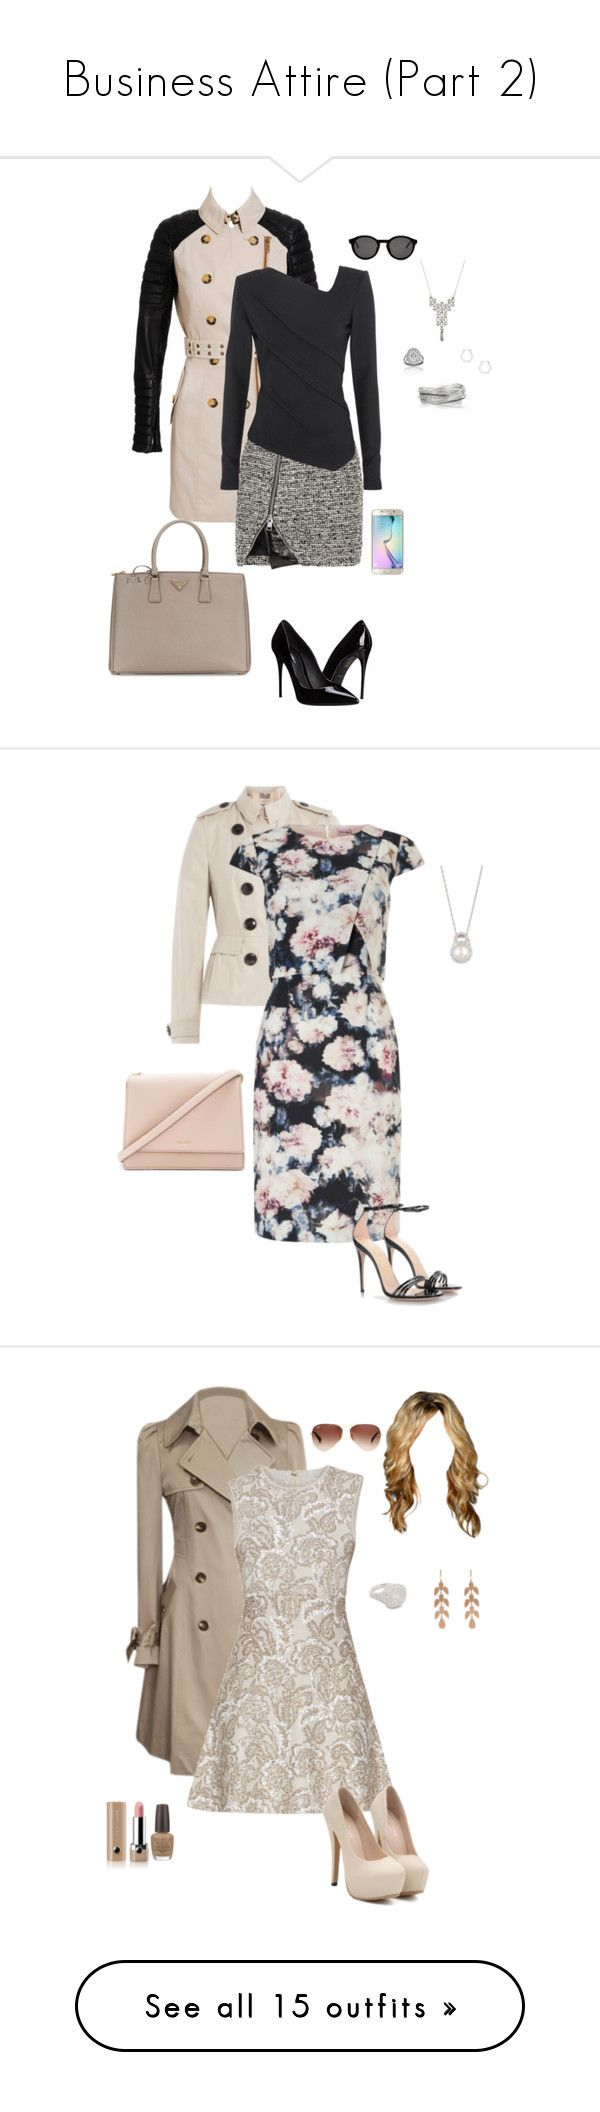 """""""Business Attire (Part 2)"""" by gone-girl ❤ liked on Polyvore featuring Burberry, Bouchra Jarrar, Donna Karan, COOMI, Dolce&Gabbana, Thierry Lasry, Prada, Samsung, Marc by Marc Jacobs and Phase Eight"""